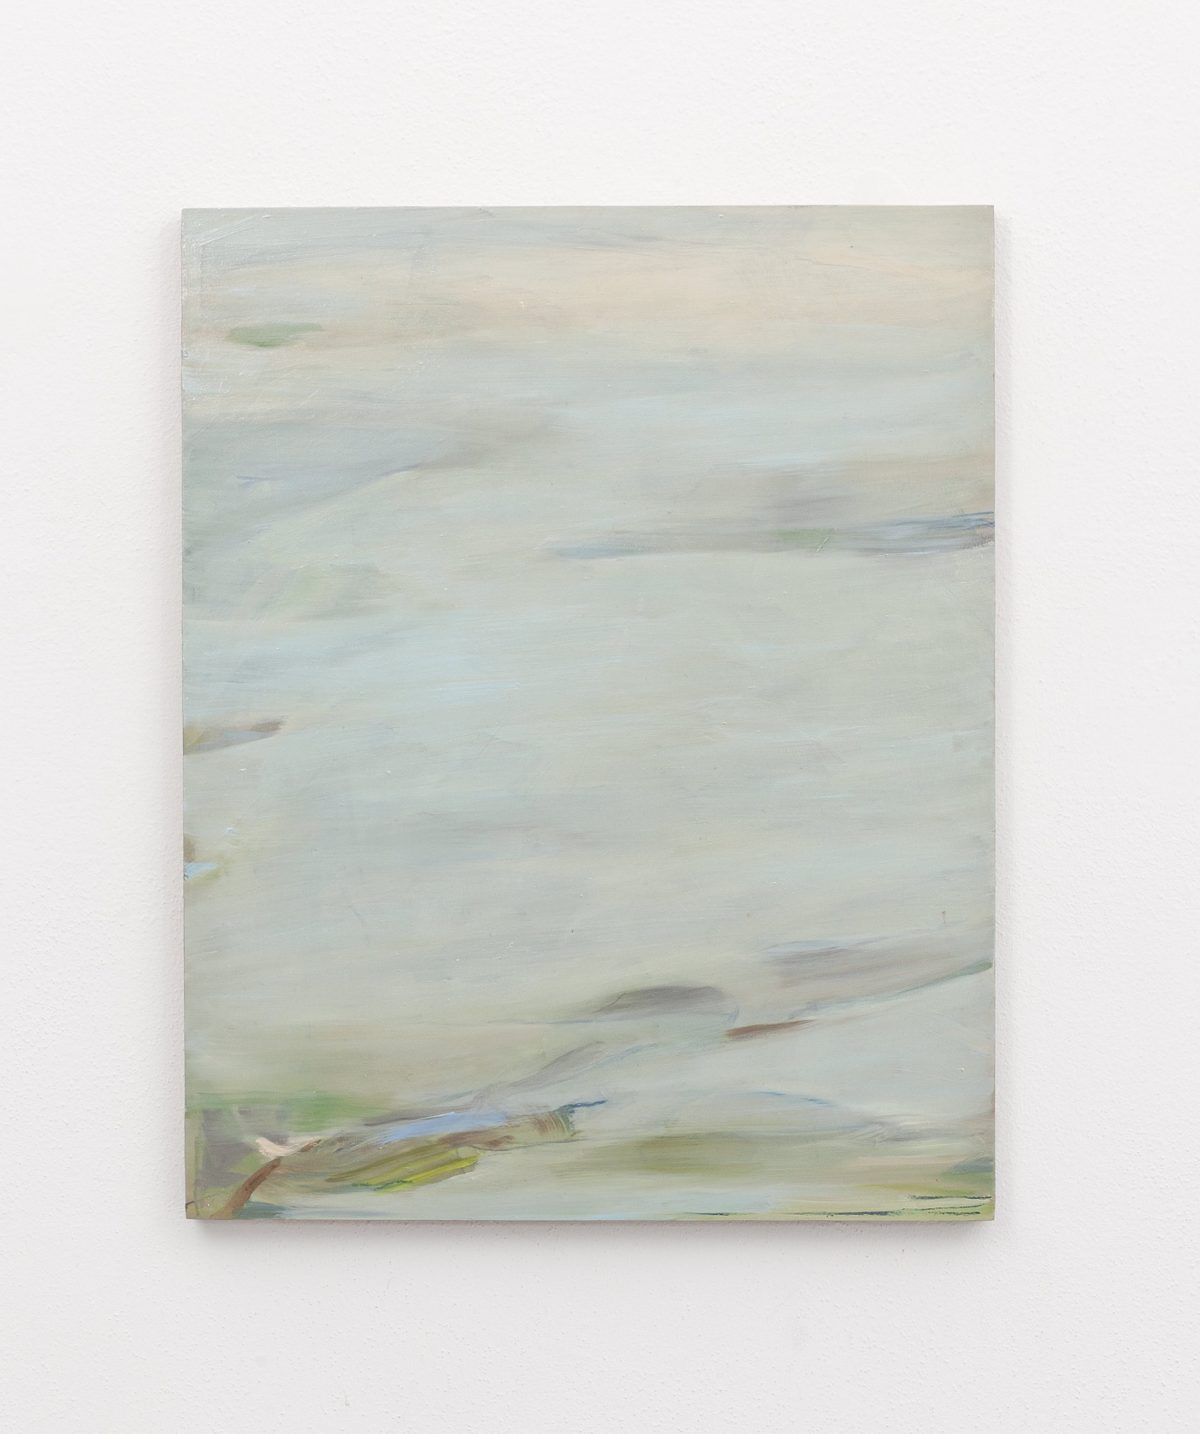 Beatrice Meoni, Searching for the miracolous (omaggio a Bas Jan Ader), 2018, olio su tavola, cm 50x40